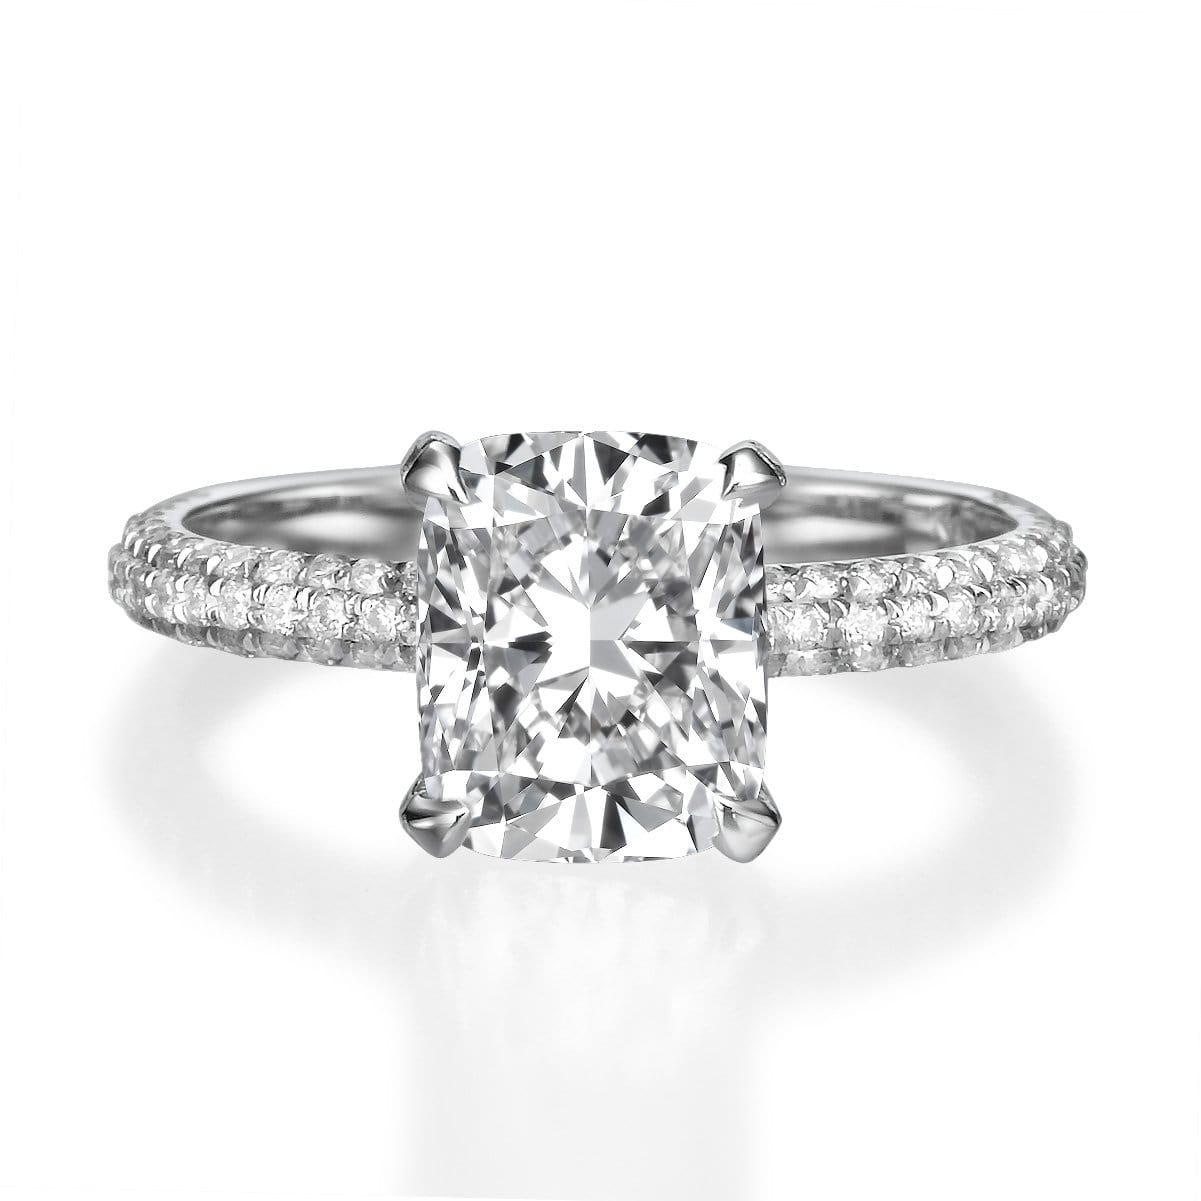 2.51 ct Cushion Cut Diamond Engagement Ring